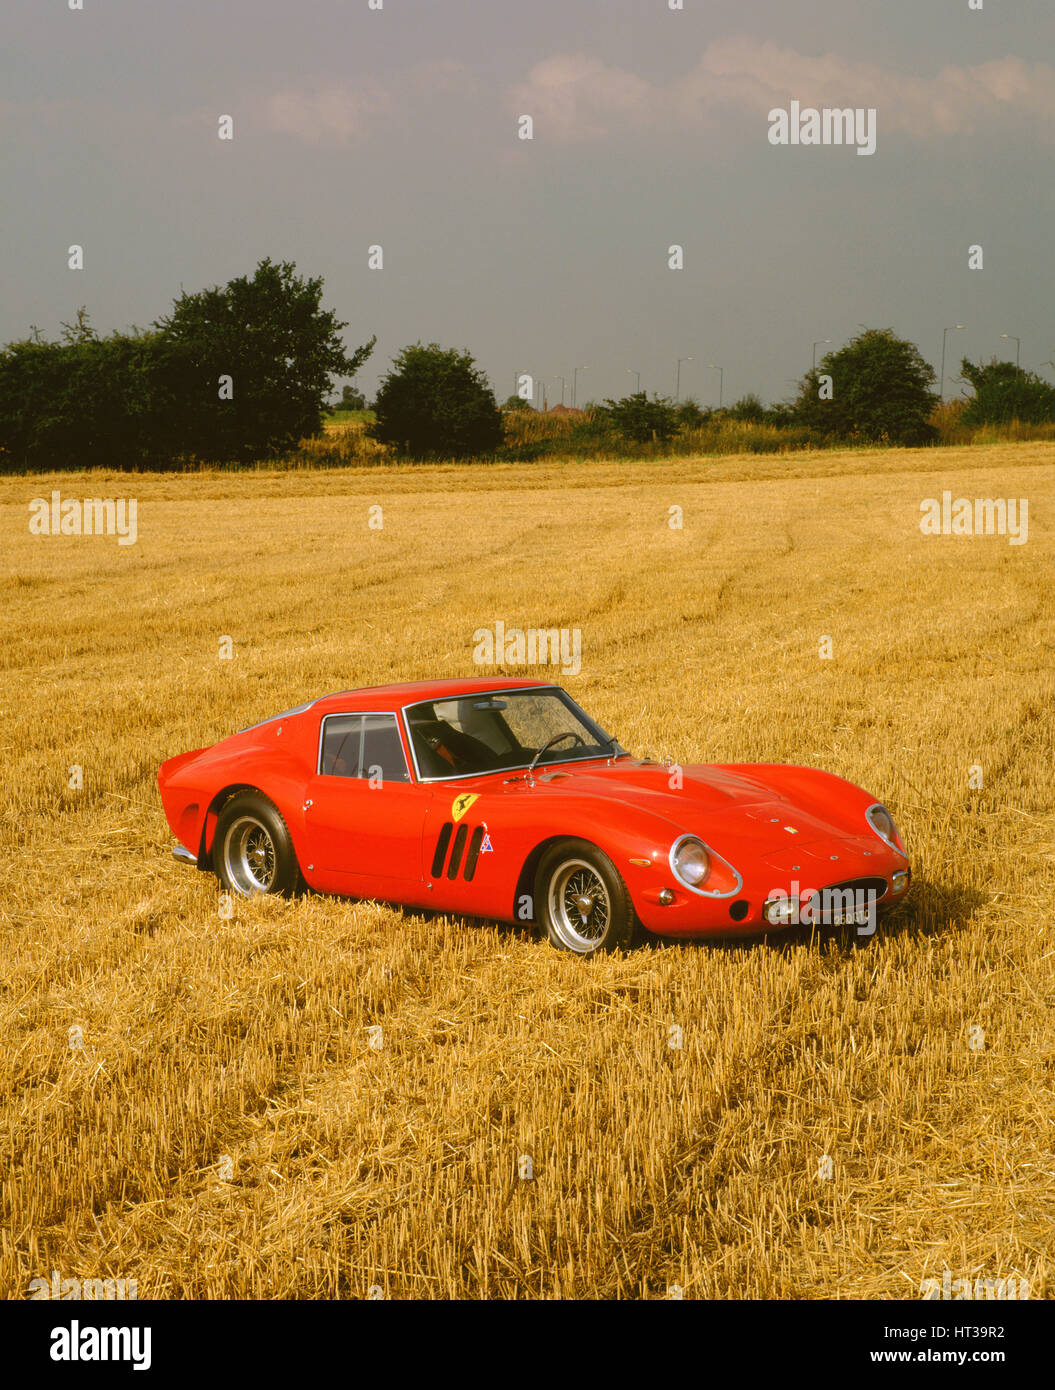 1963 Ferrari 250 GTO. Artist: Unknown. - Stock Image